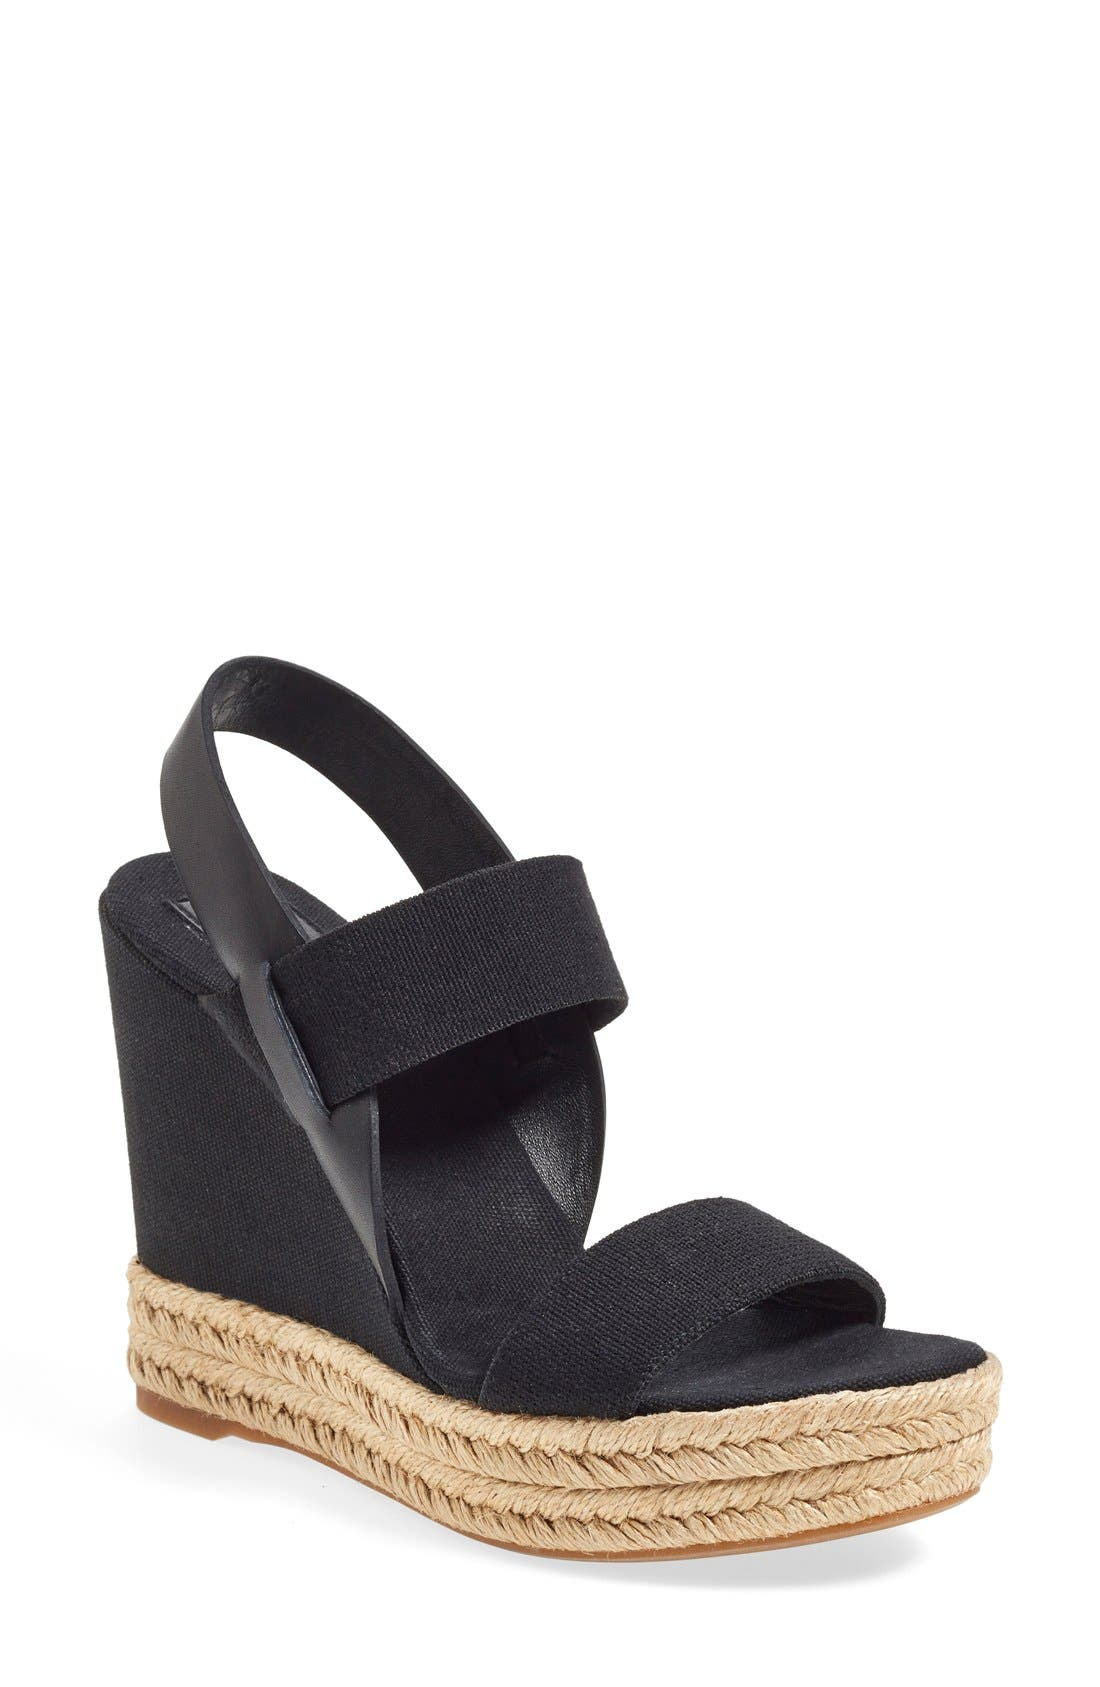 TORY BURCH Espadrille Wedge Sandal, Main, color, 009